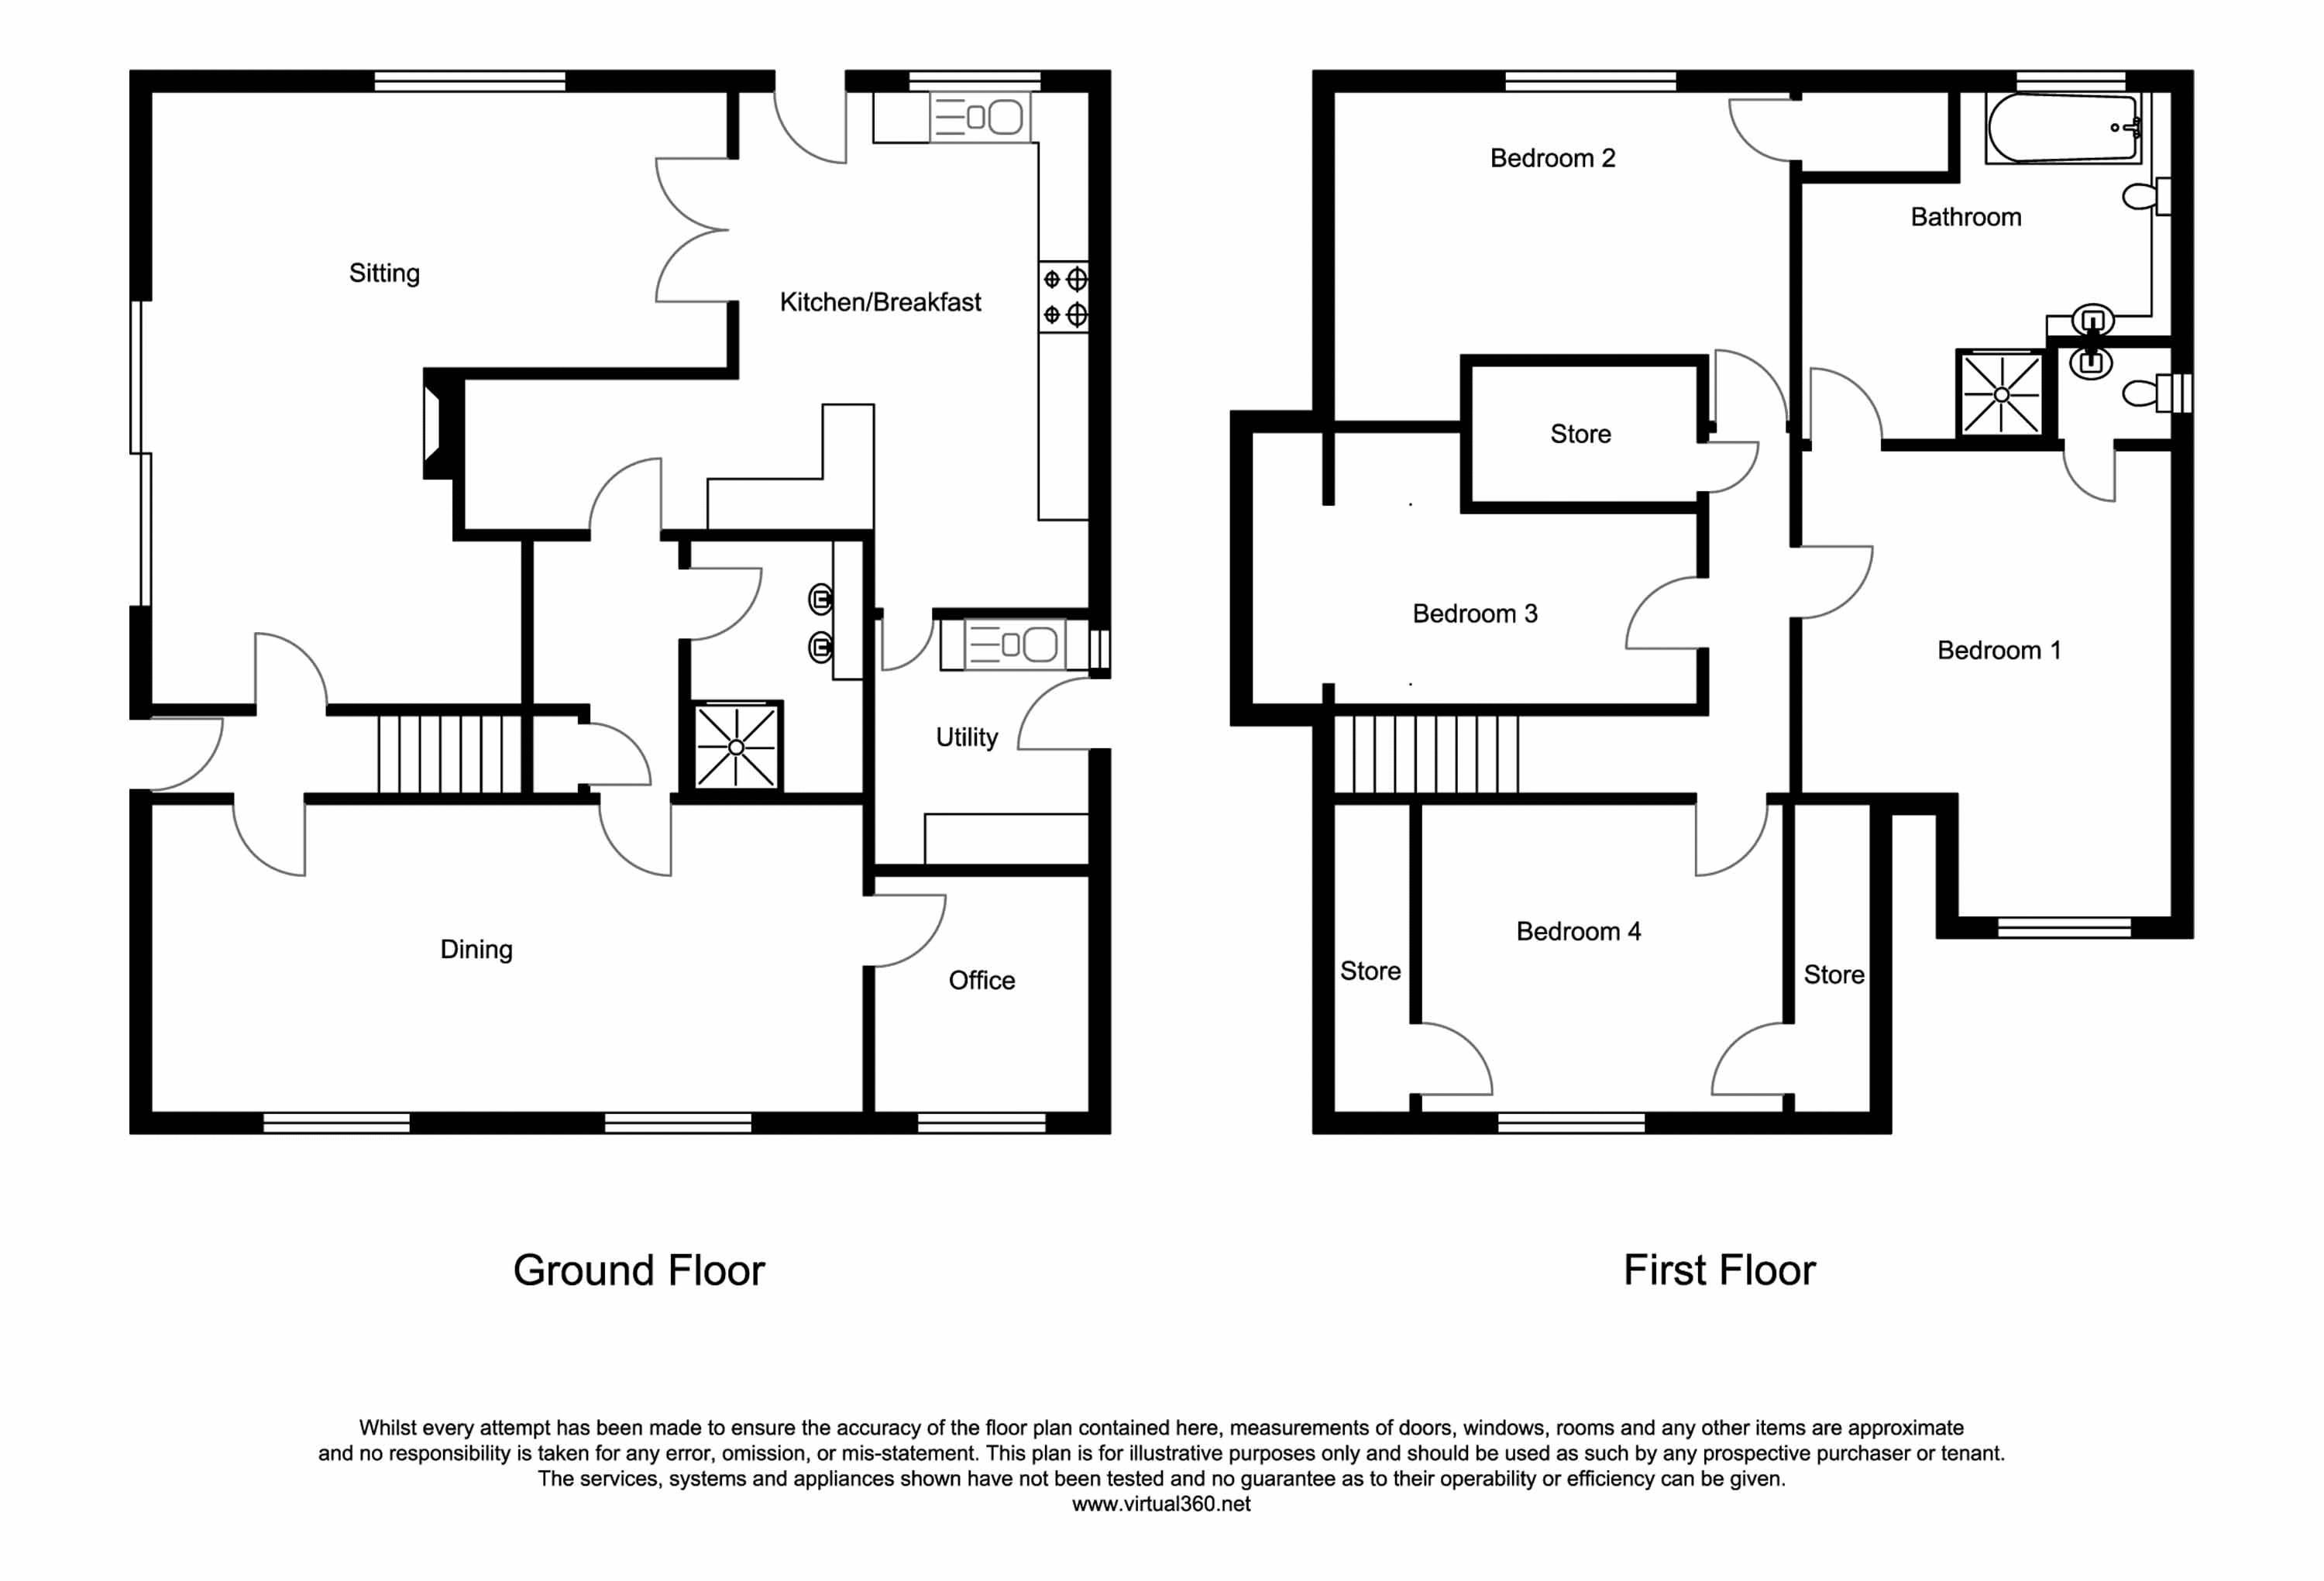 Allesley Hall Drive, Coventry floor plan